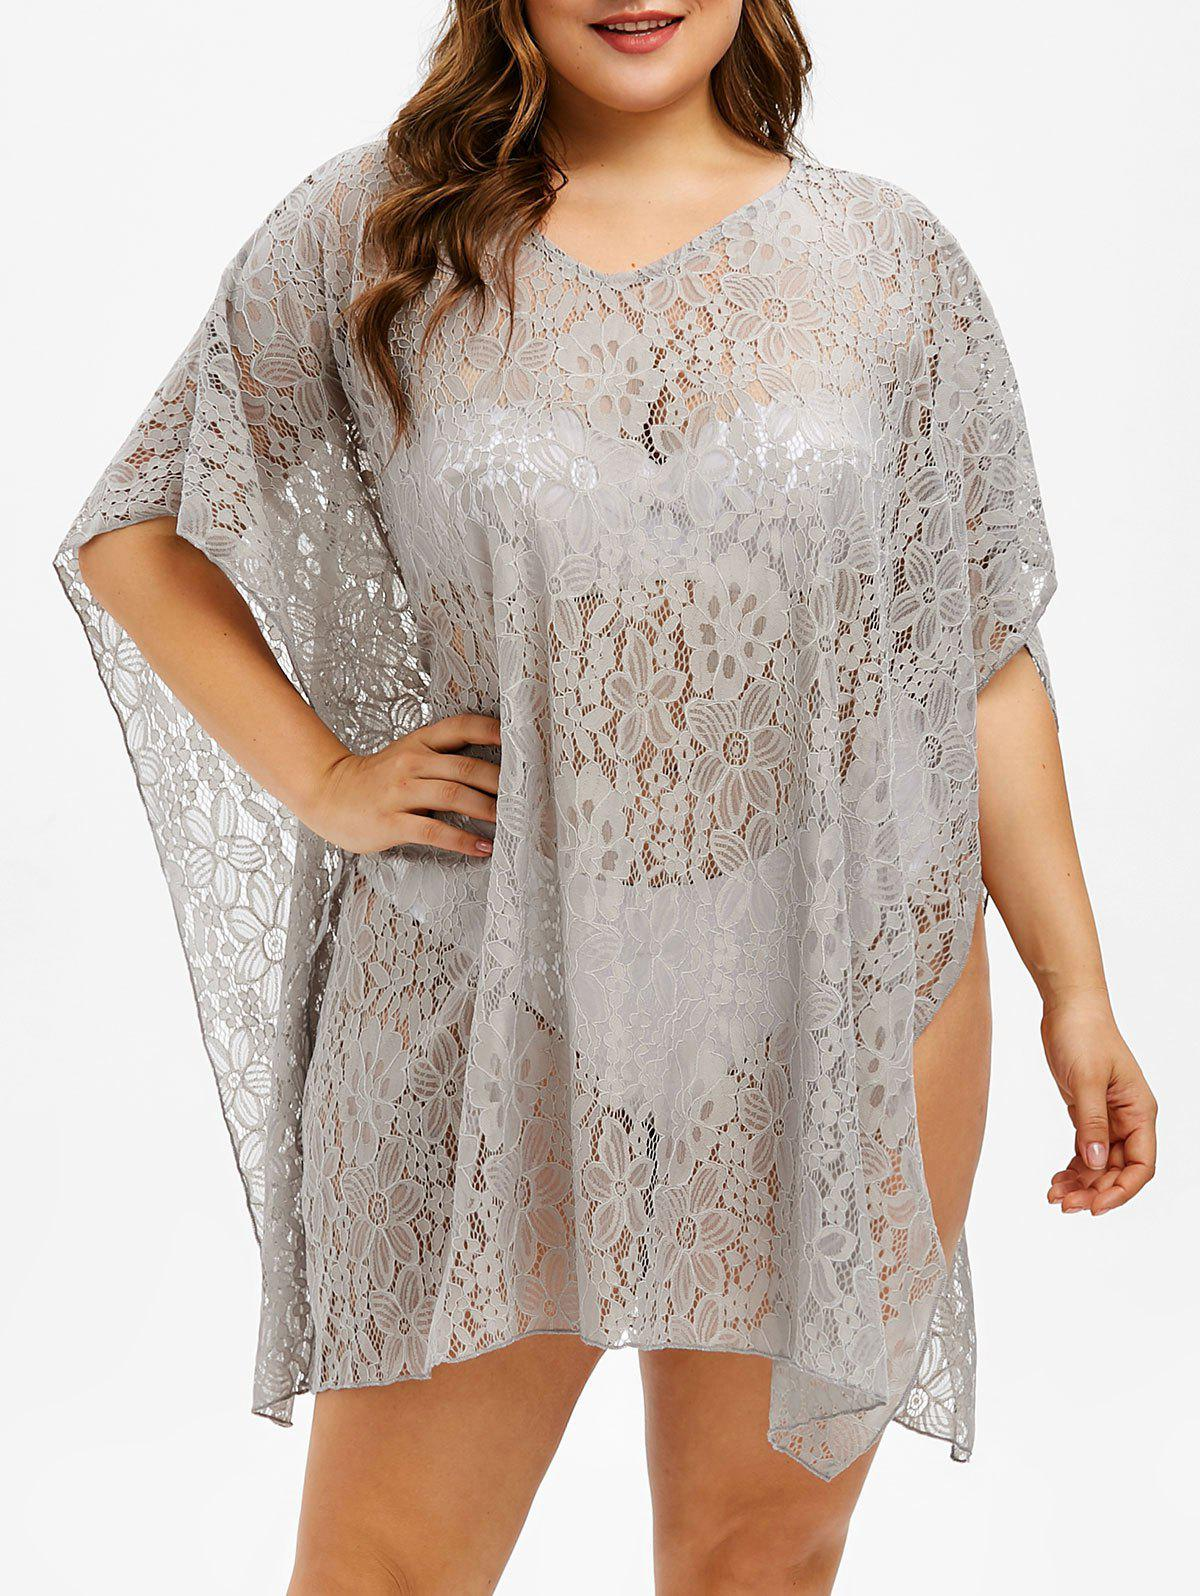 f0915bf0da0aa V Neck Plus Size Lace Cover Up - One Size. rosegal